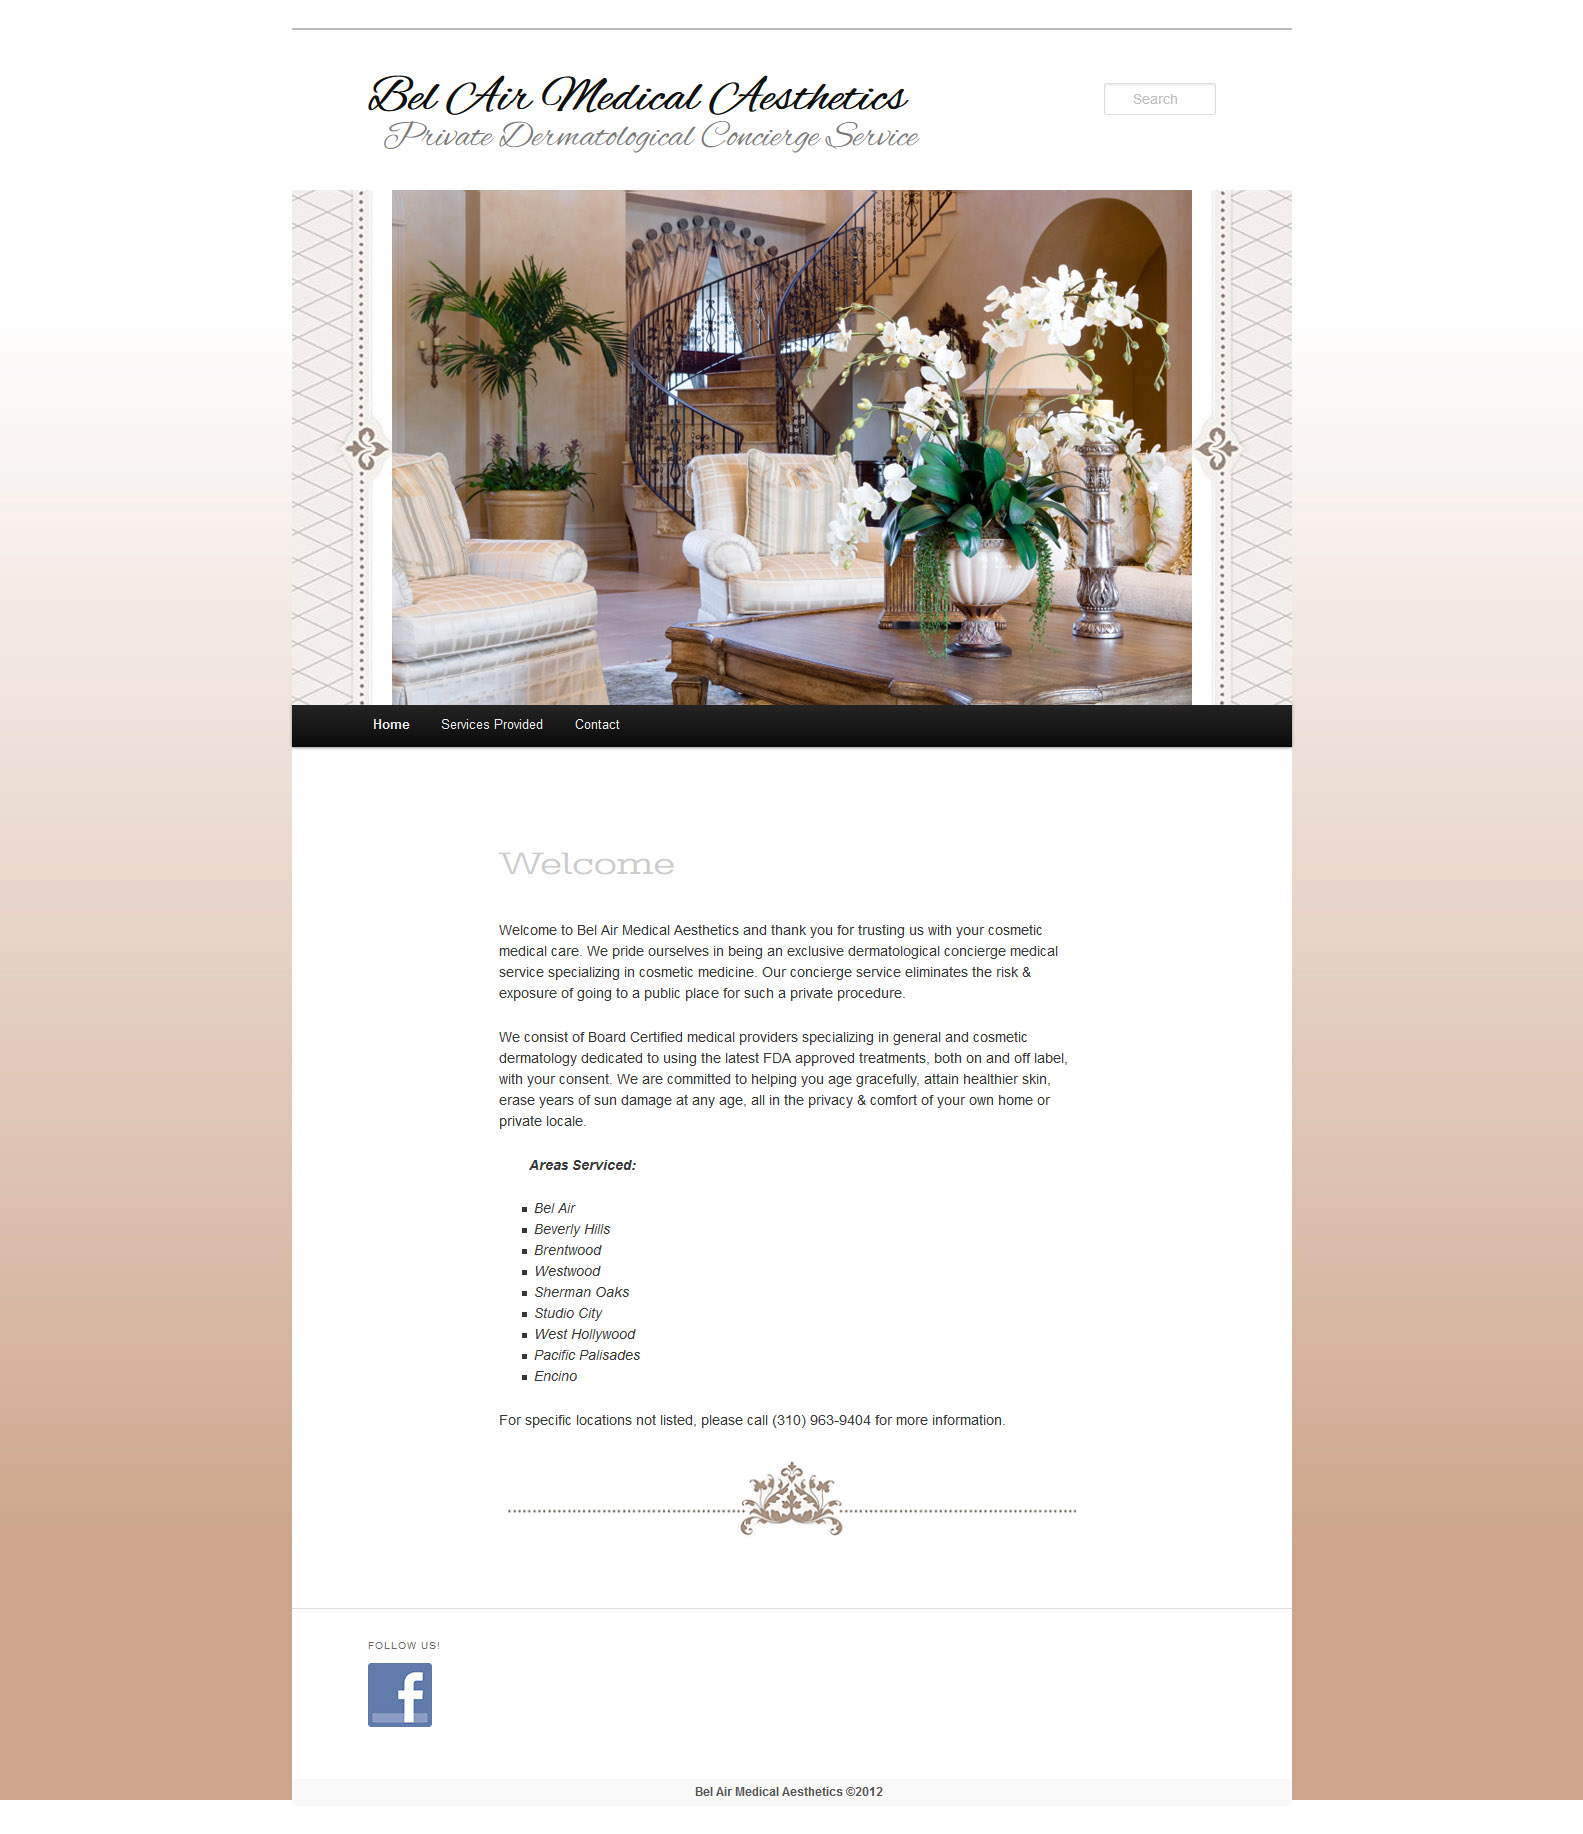 Bel Air Medical Aesthetics Web Design and Implementation